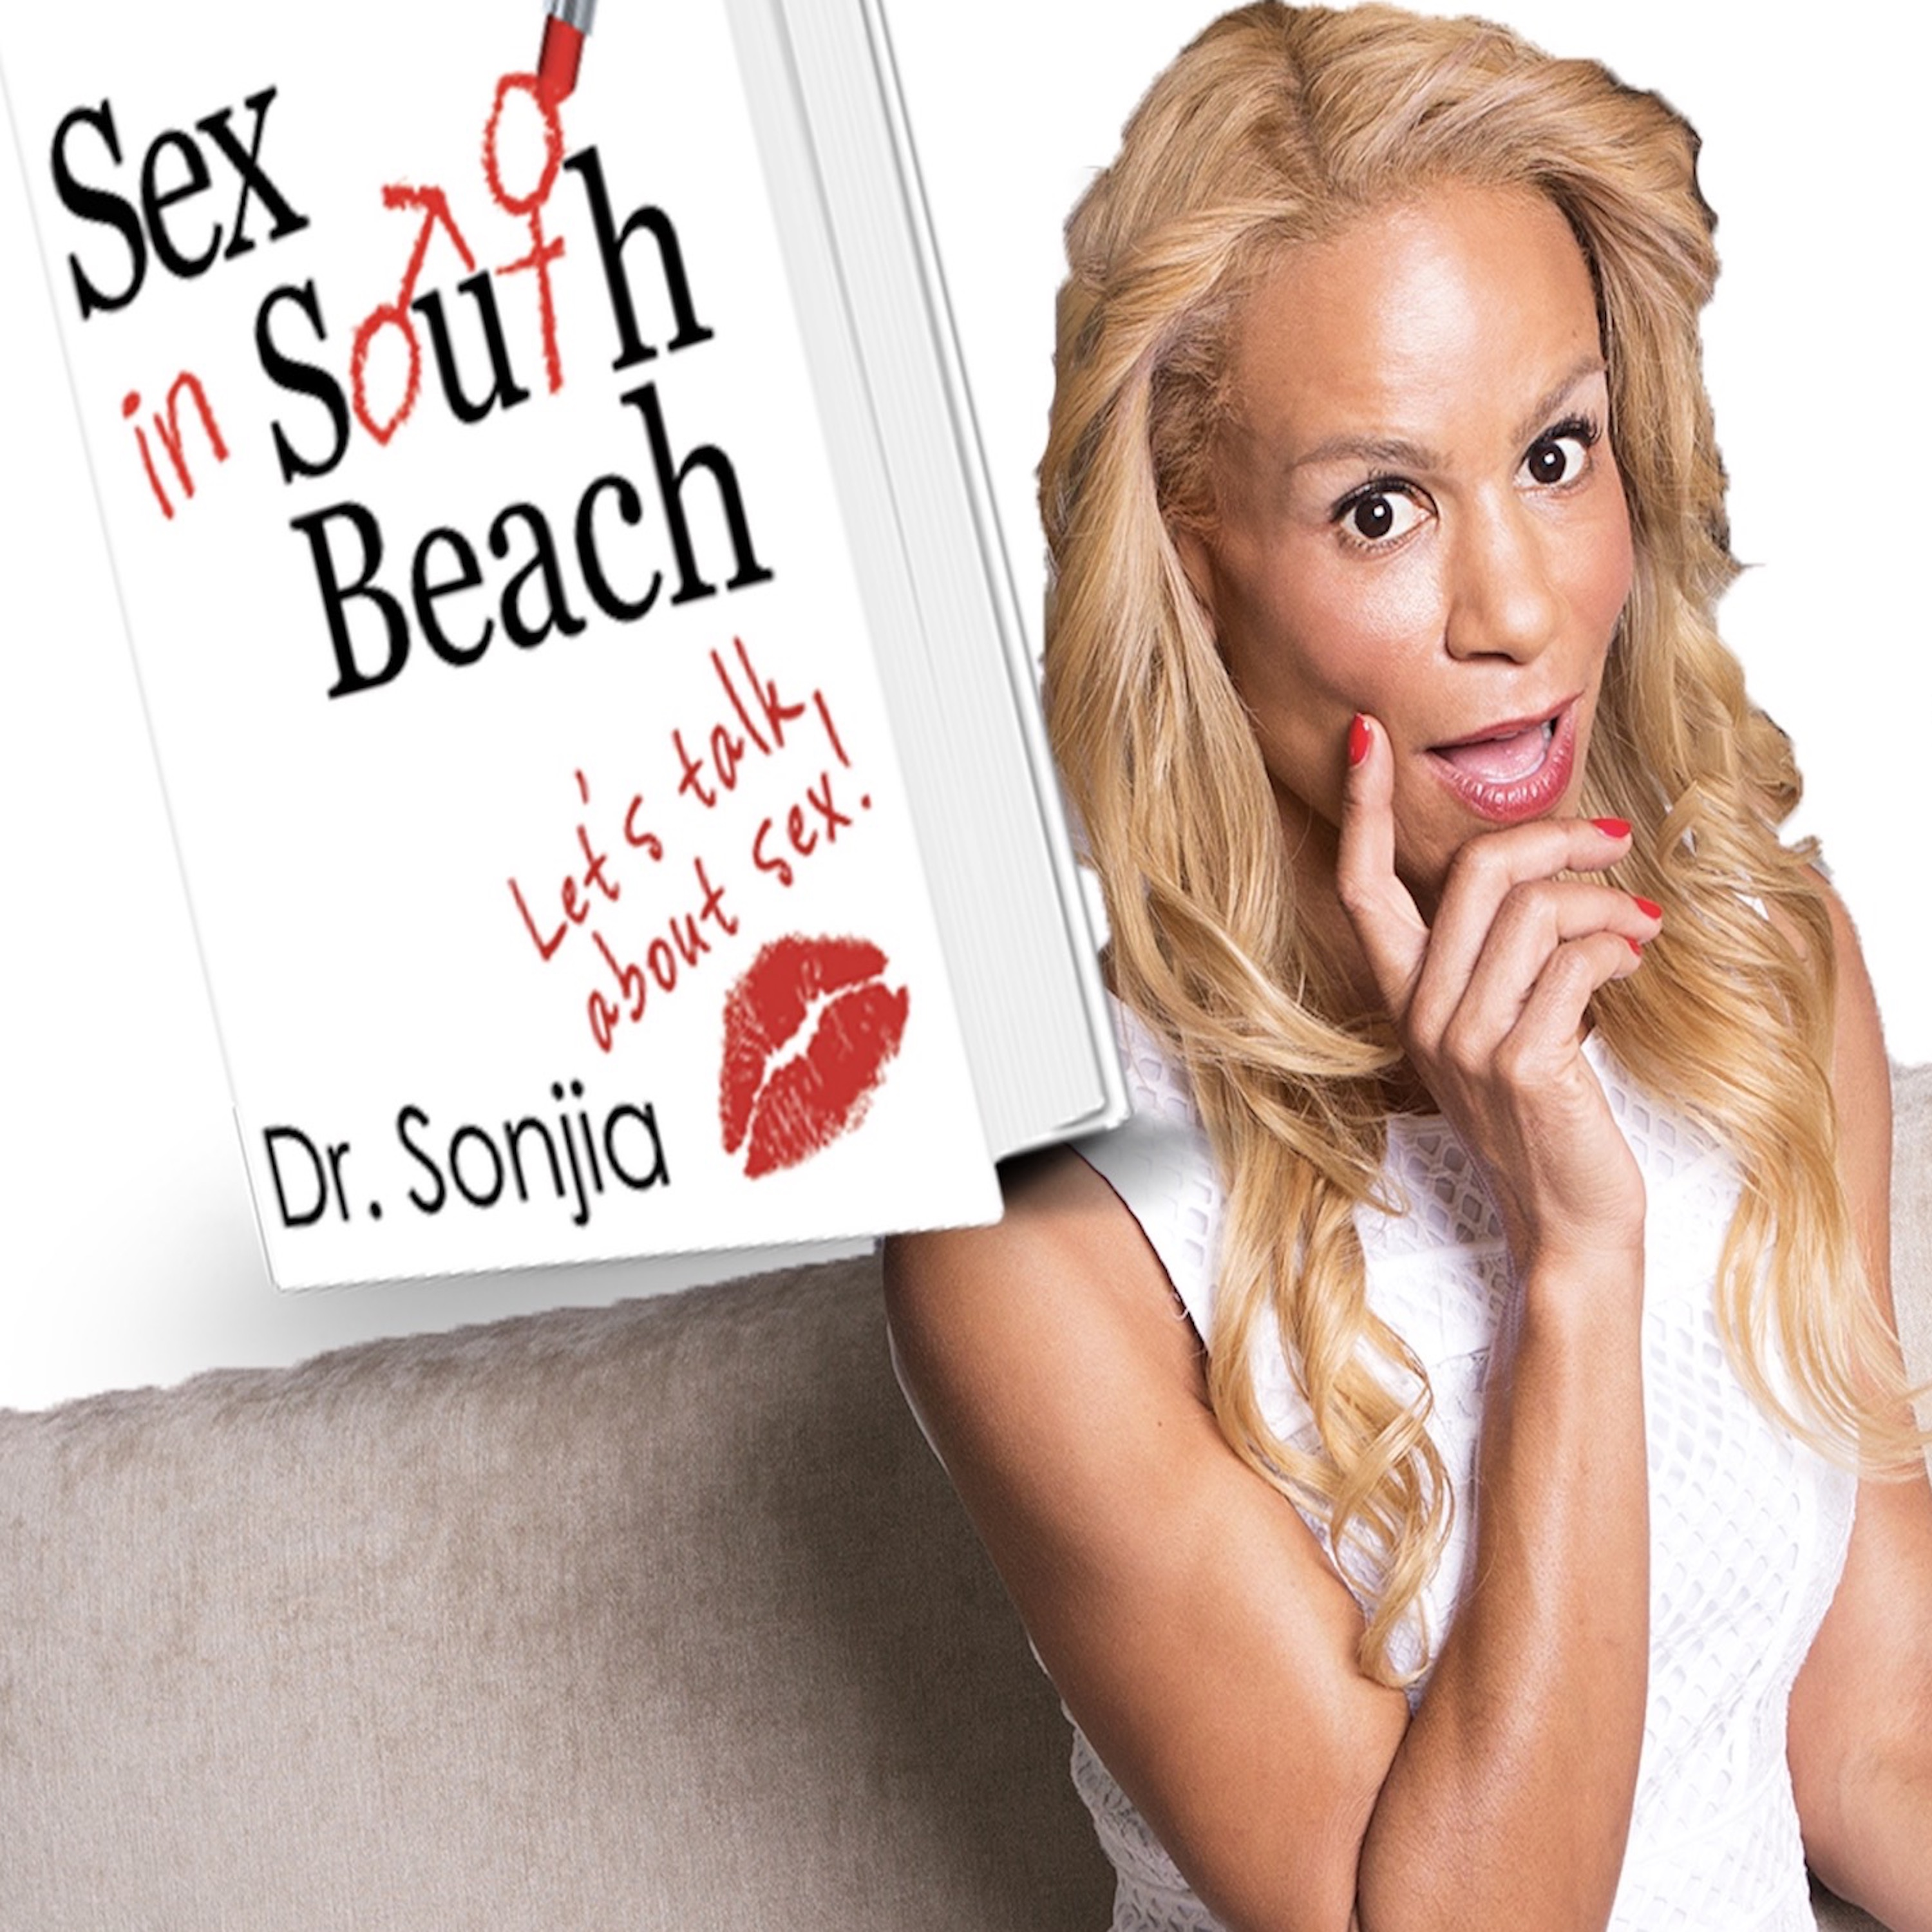 Sex in South Beach with Dr. Sonjia show art